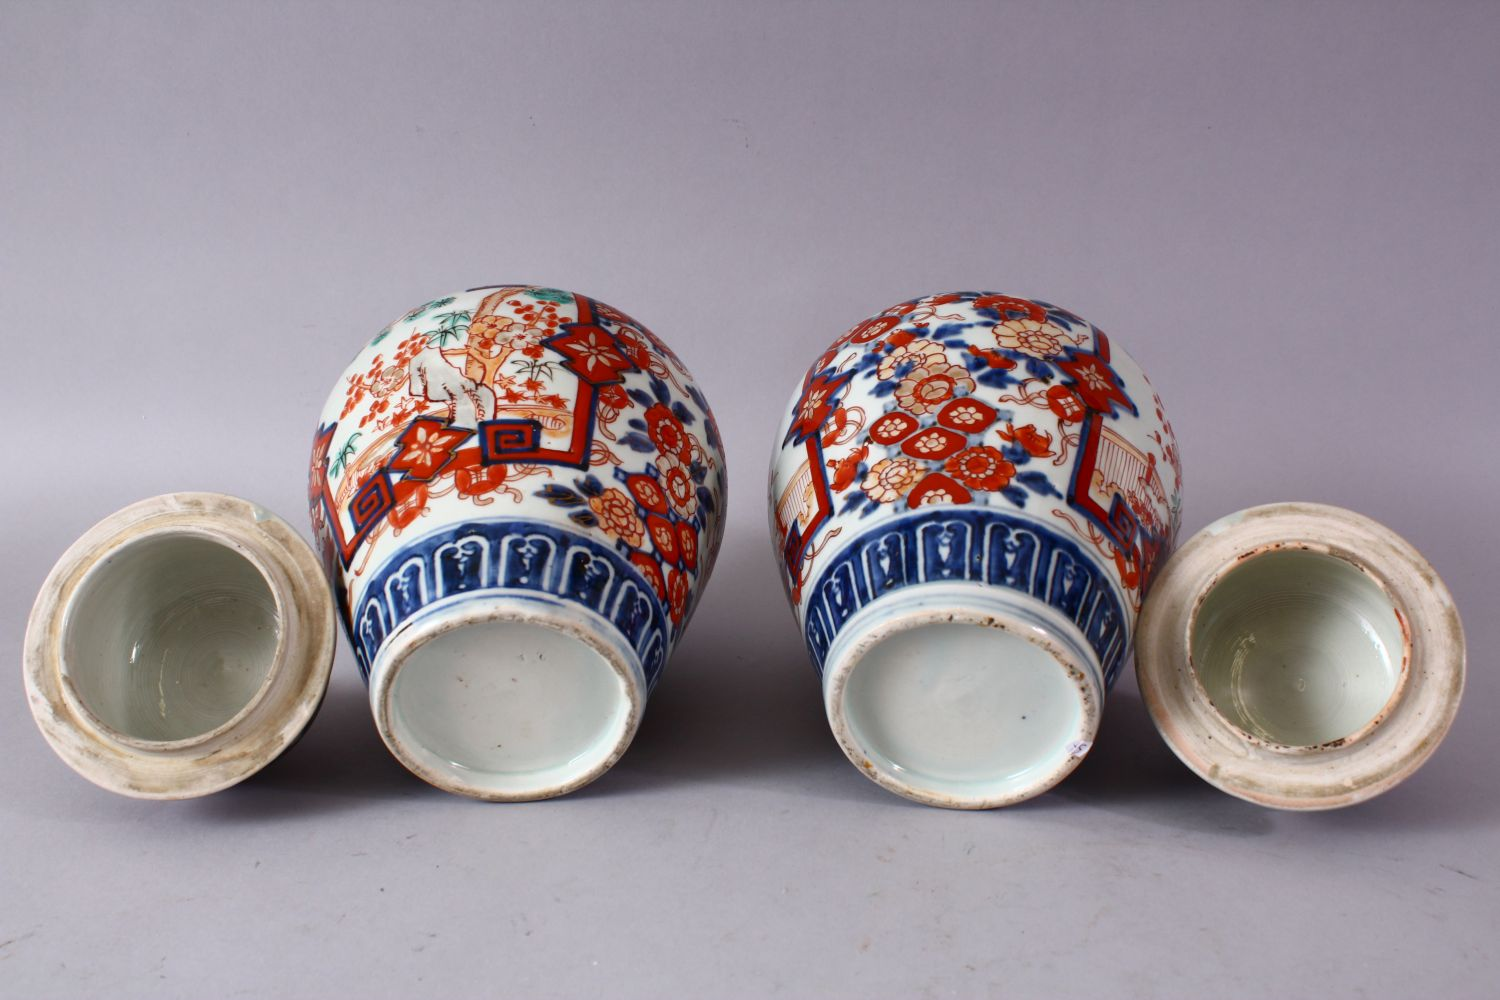 A PAIR OF MEIJI PERIOD IMARI VASES AND COVERS, with kylin finials, overall 30cm high. - Image 10 of 10